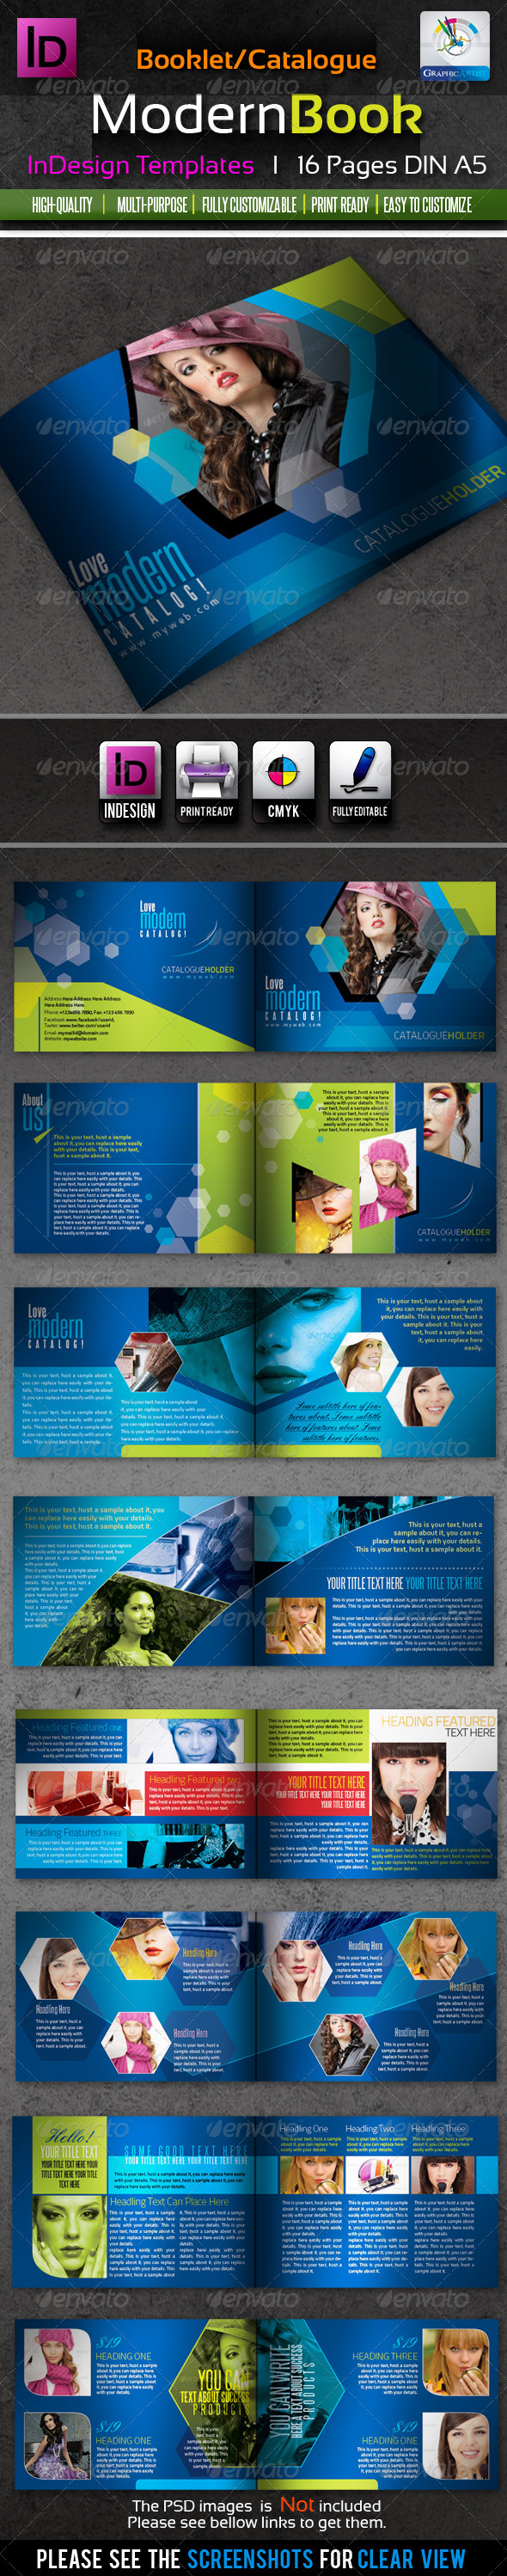 Corporate InDesign Modern Booklet/Catalog 16pages - Corporate Brochures